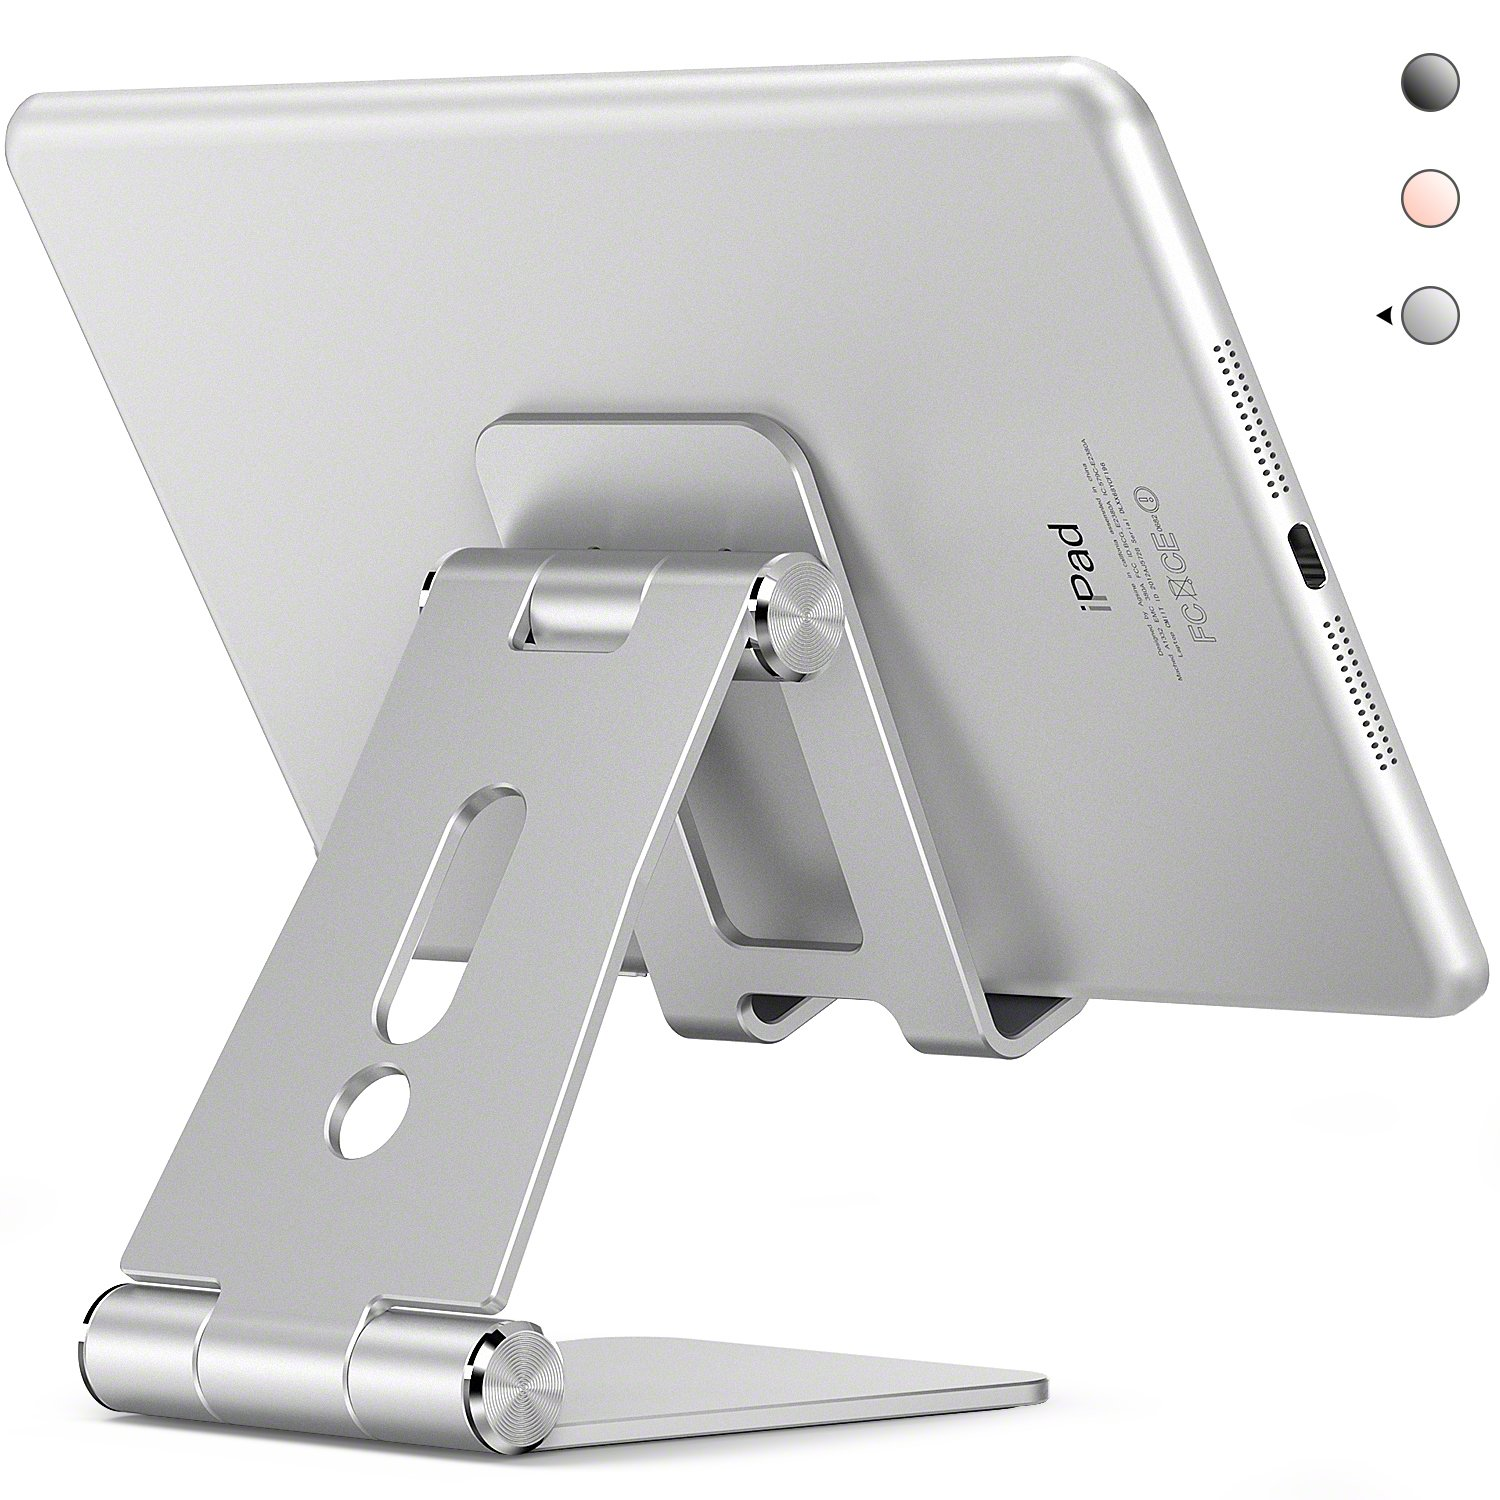 Adjustable Tablet Stand,Aodh Multi-Angle iPad Stand,Cell Phone Stand,iPhone Stand Dock, Nintendo Switch Stand and Holder for iPad, Android Smartphones, Samsung, Kindle Accessories (4-13 inch)(Silver)